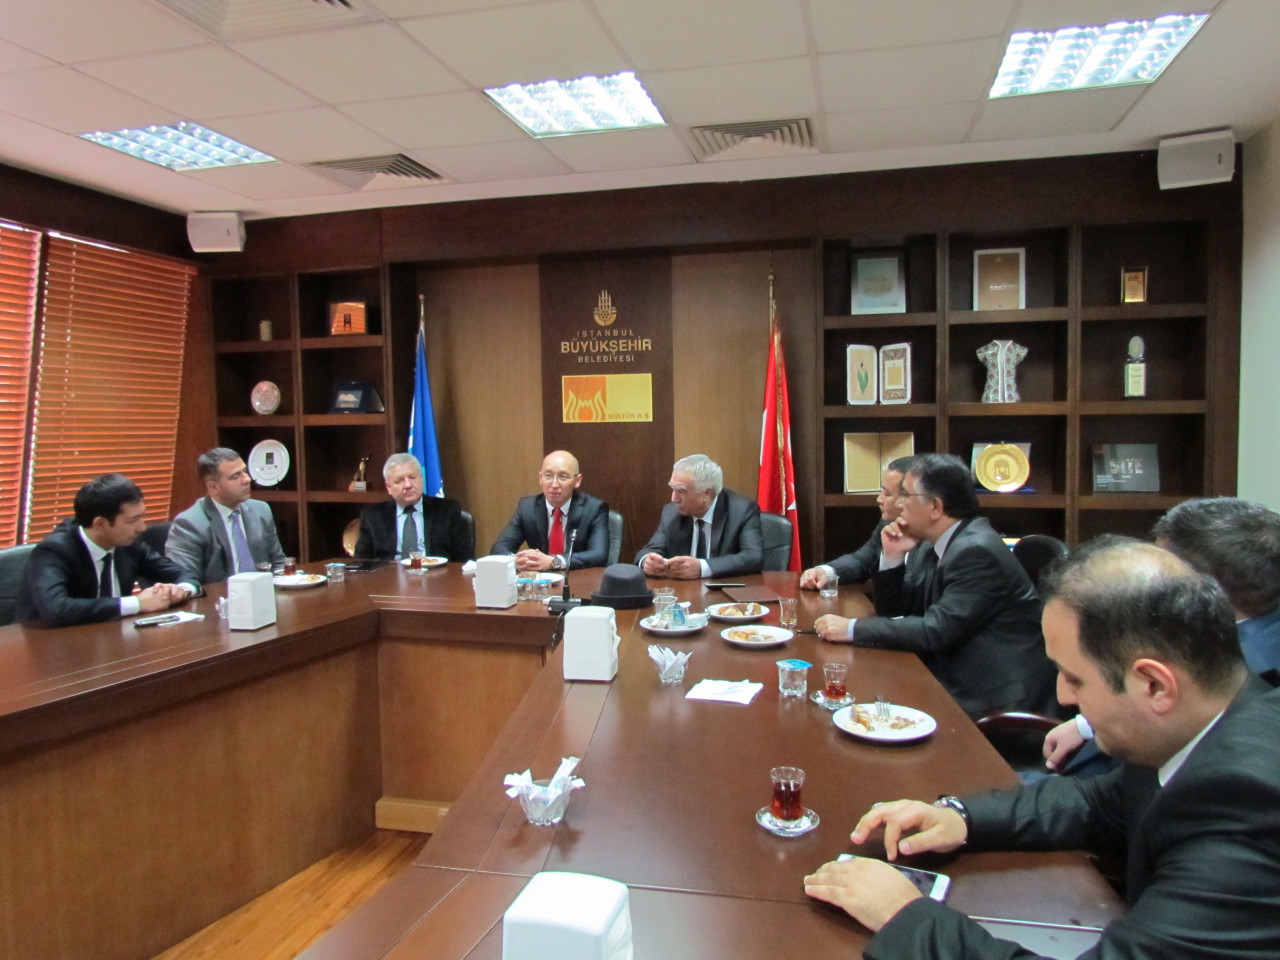 Visit from the Deputy Minister Chakiev to Culture Co. Galeri - 3. Resim